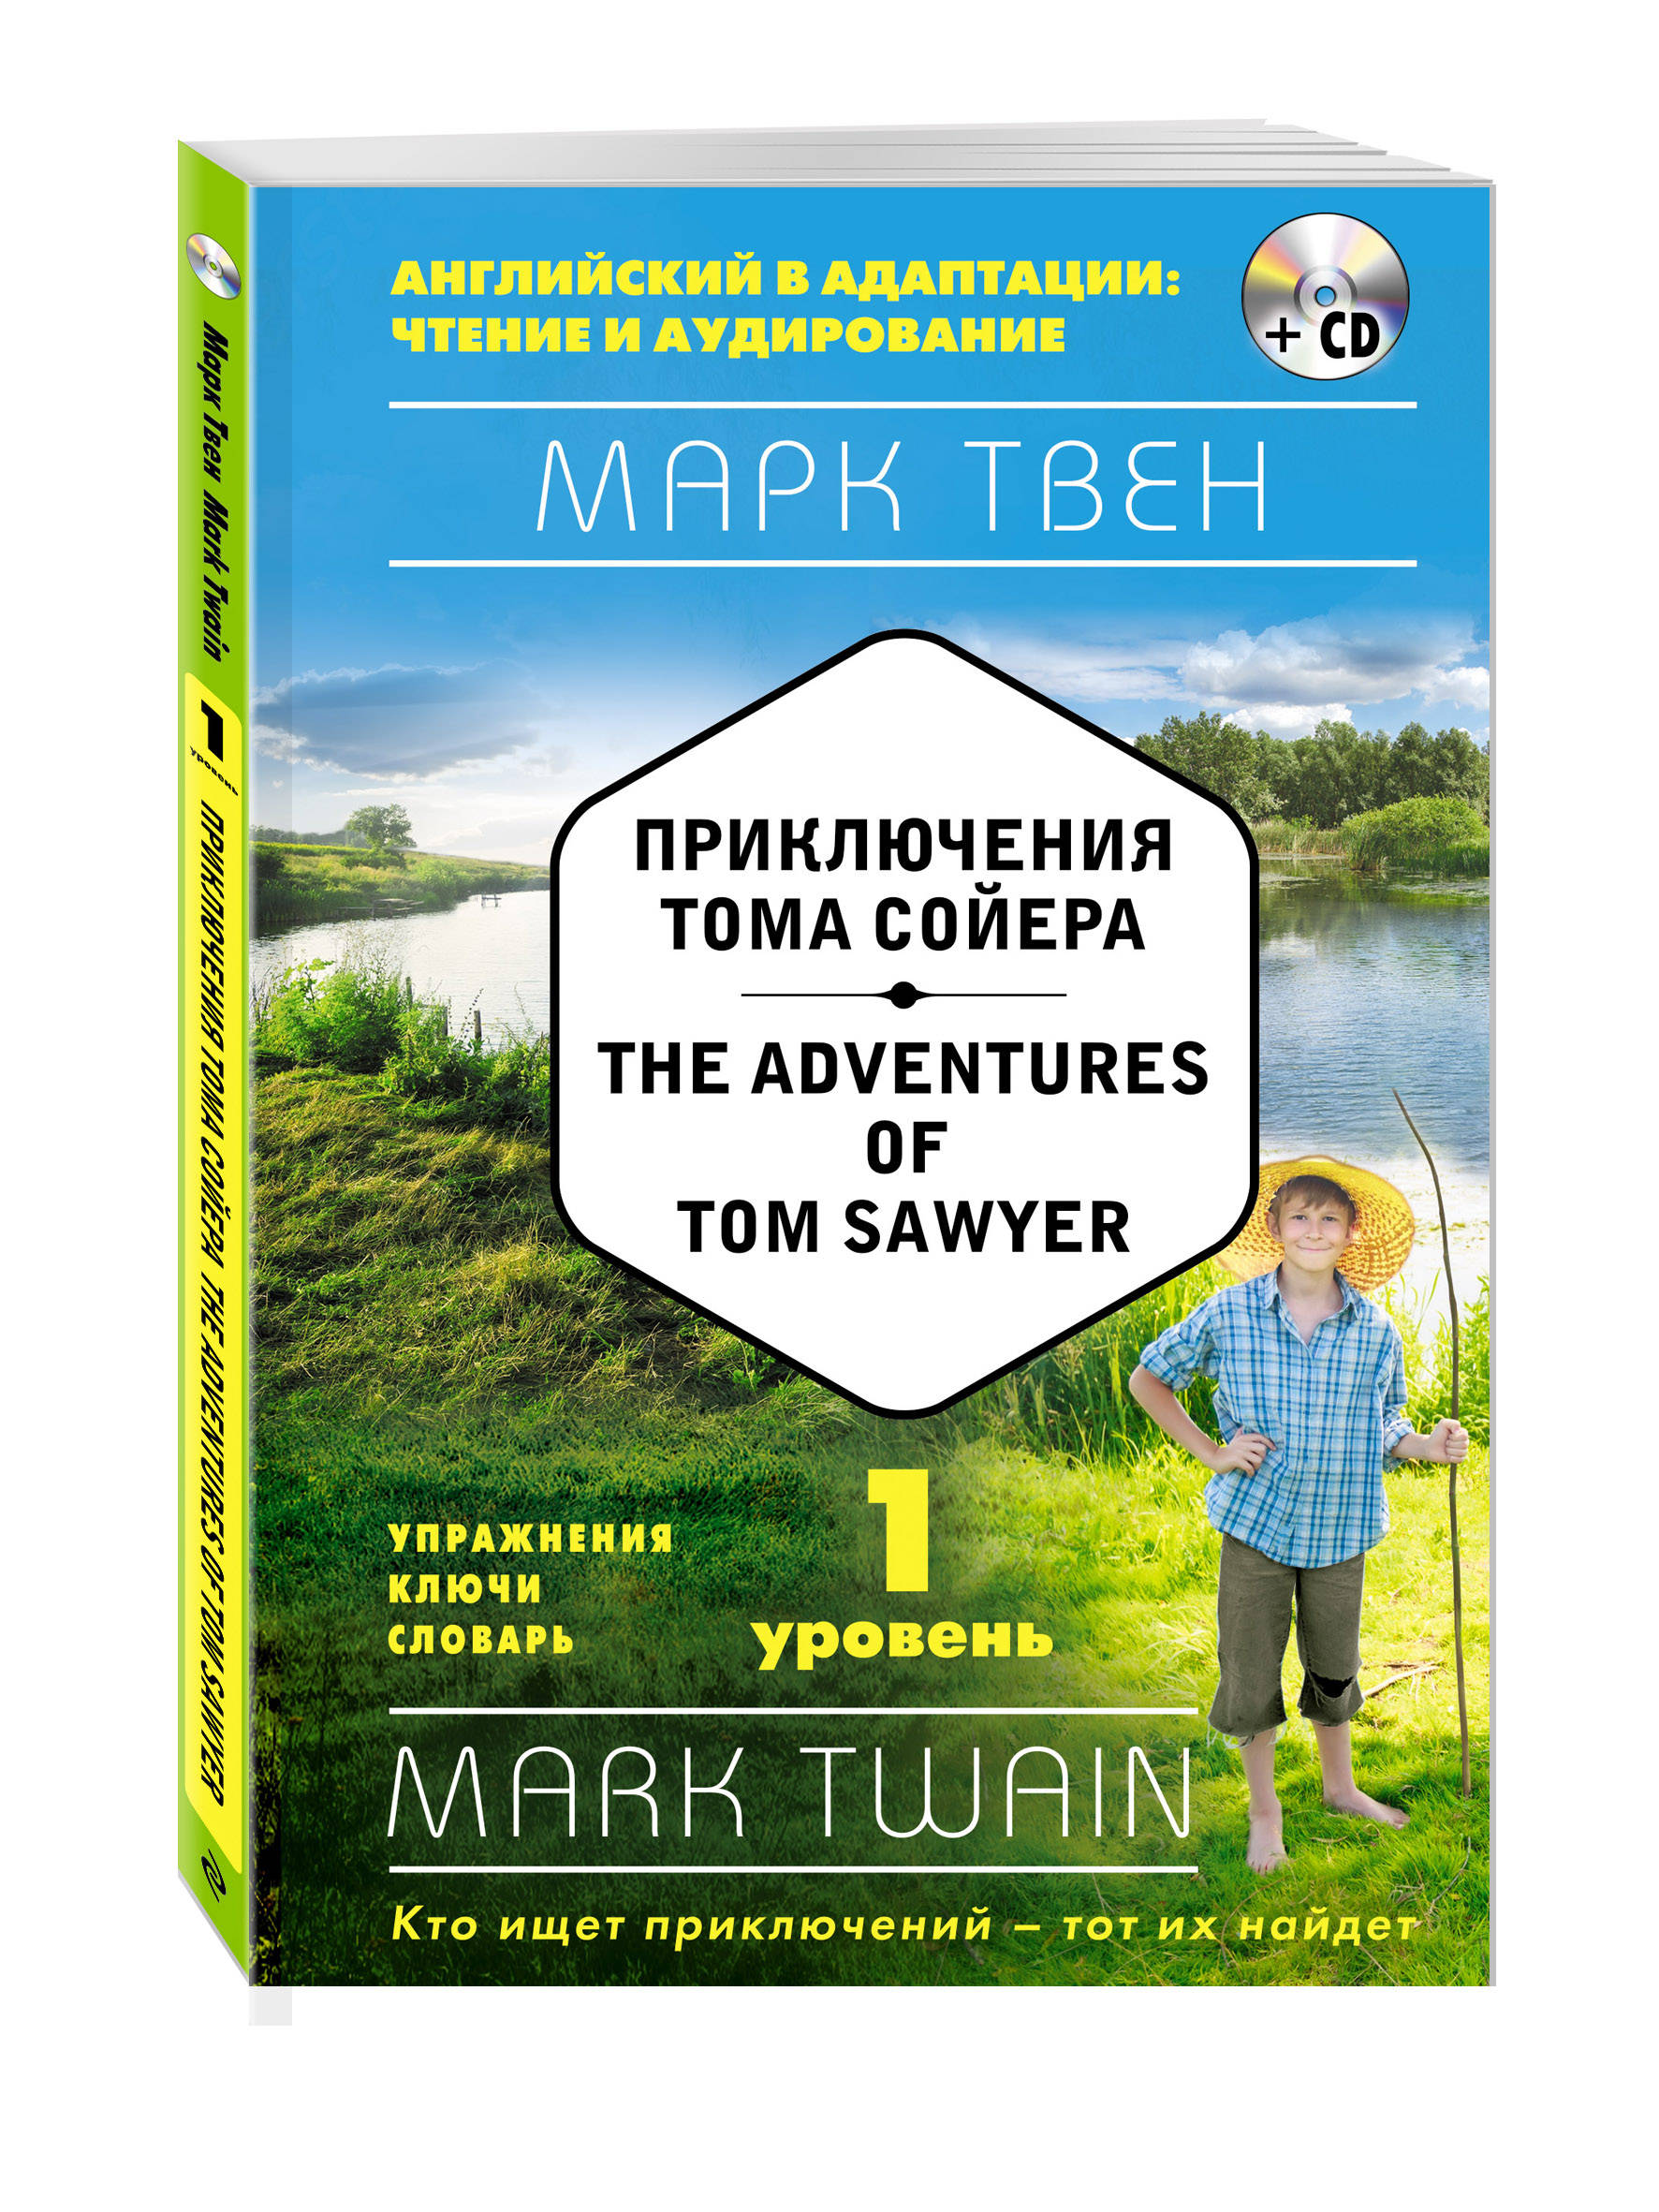 Твен М. Приключения Тома Сойера = The Adventures of Tom Sawyer (+ СD): 1-й уровень mark twain the adventures of tom sawyer